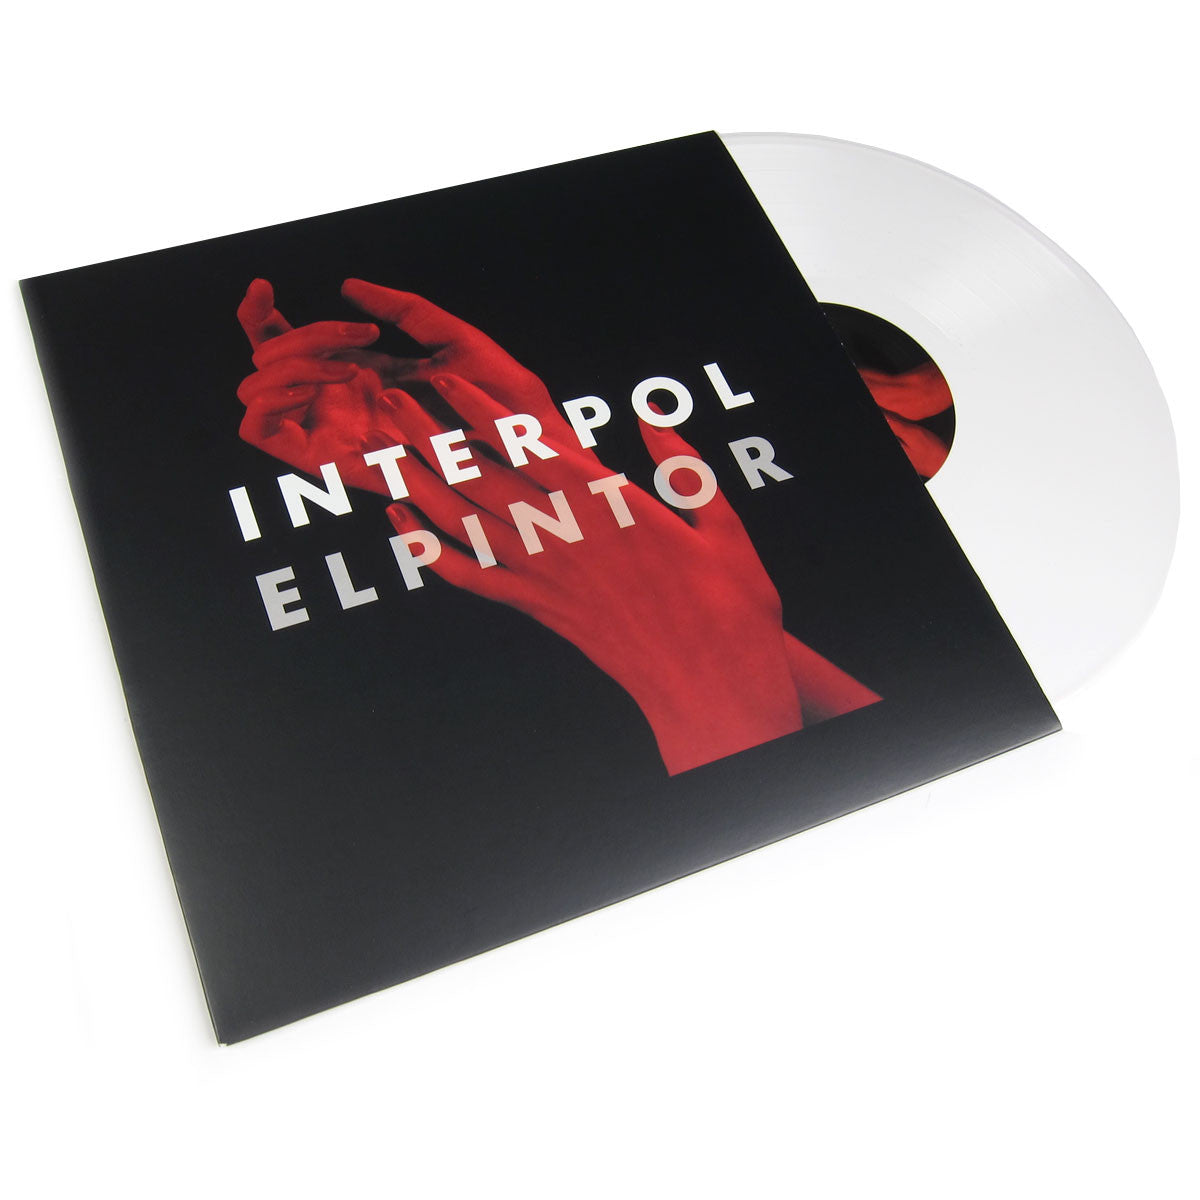 Interpol: El Pintor (White Vinyl, Free MP3) Vinyl LP